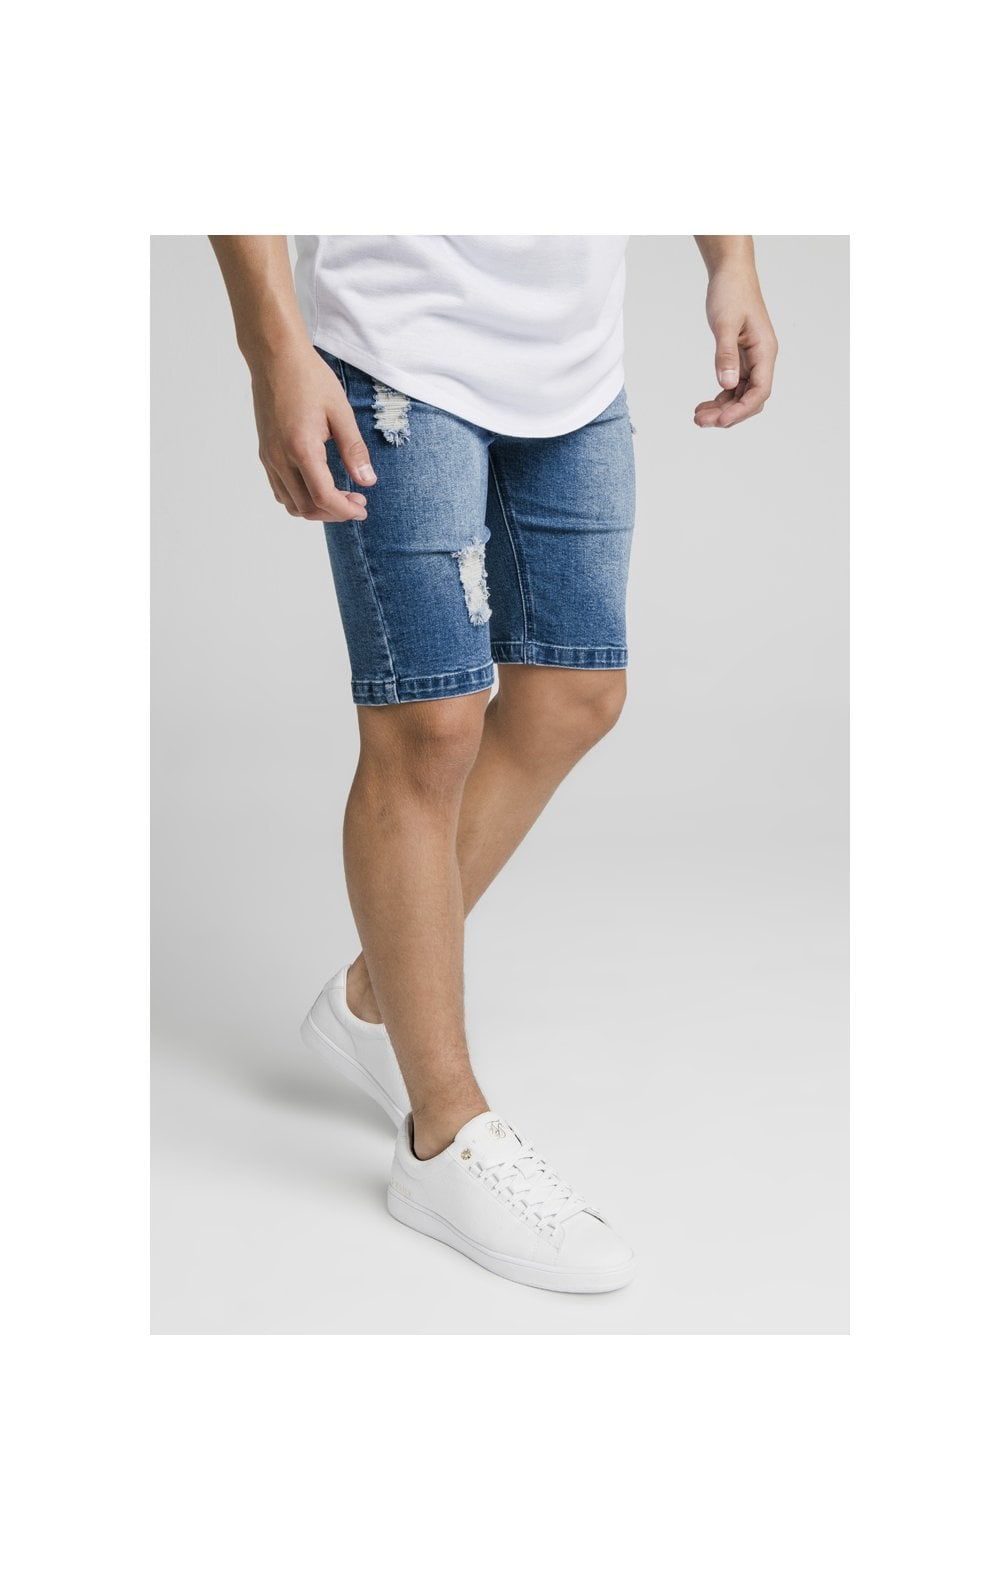 Load image into Gallery viewer, Illusive London Distressed Denim Shorts - Midstone